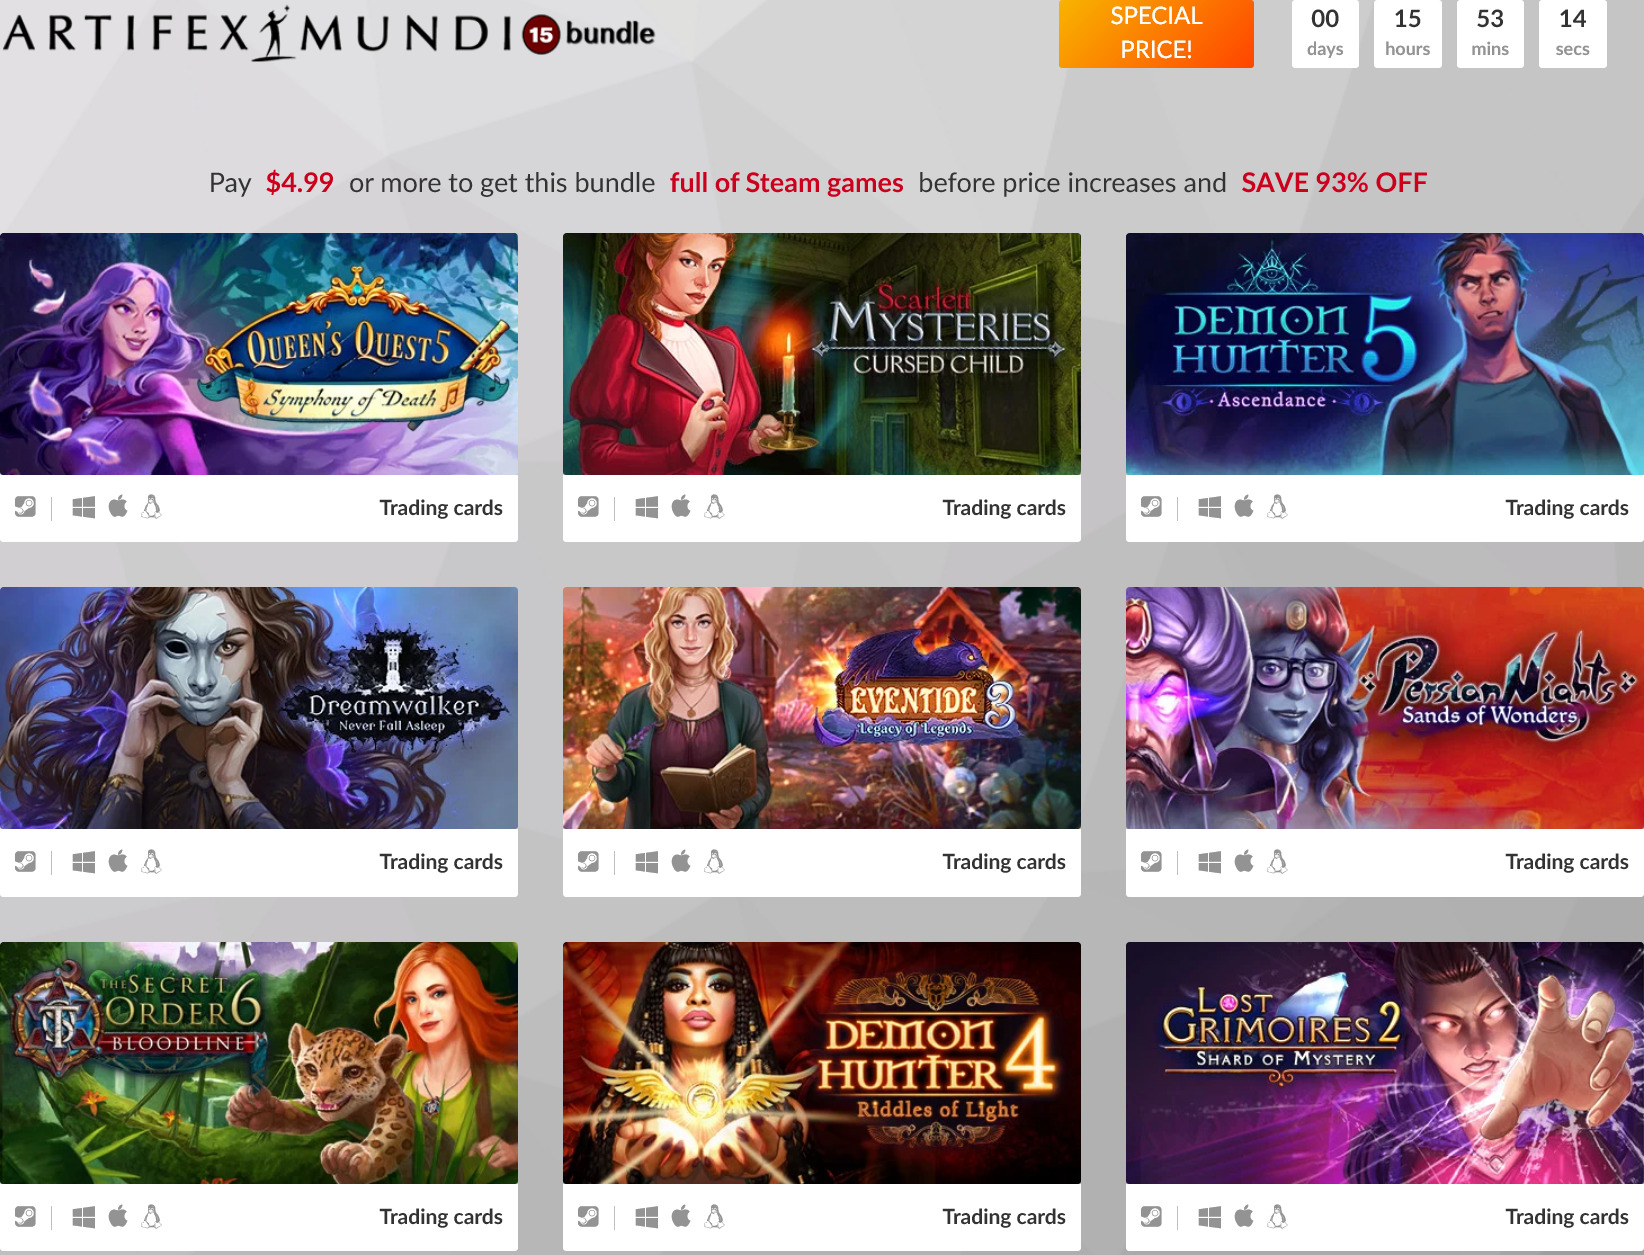 Screenshot_2020-09-04 Artifex Mundi Bundle 15 9 Steam Games 95% OFF.jpg